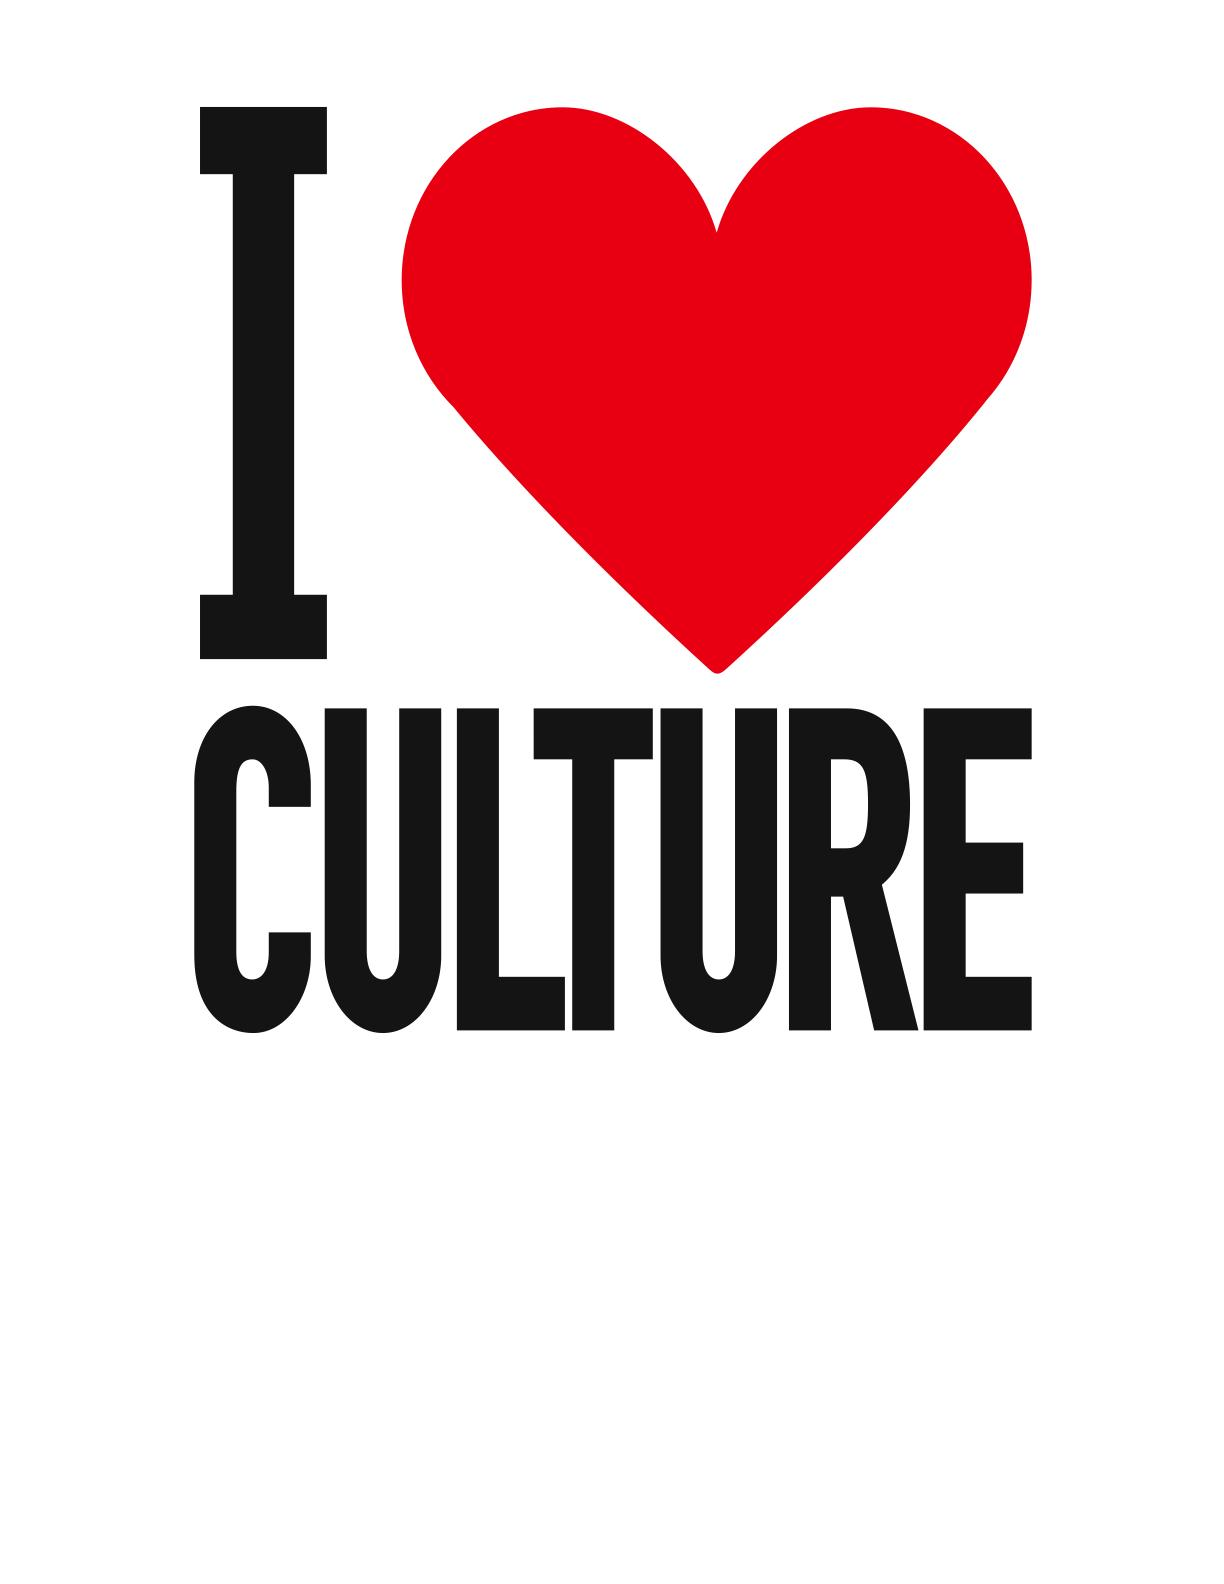 Love culture clothing store